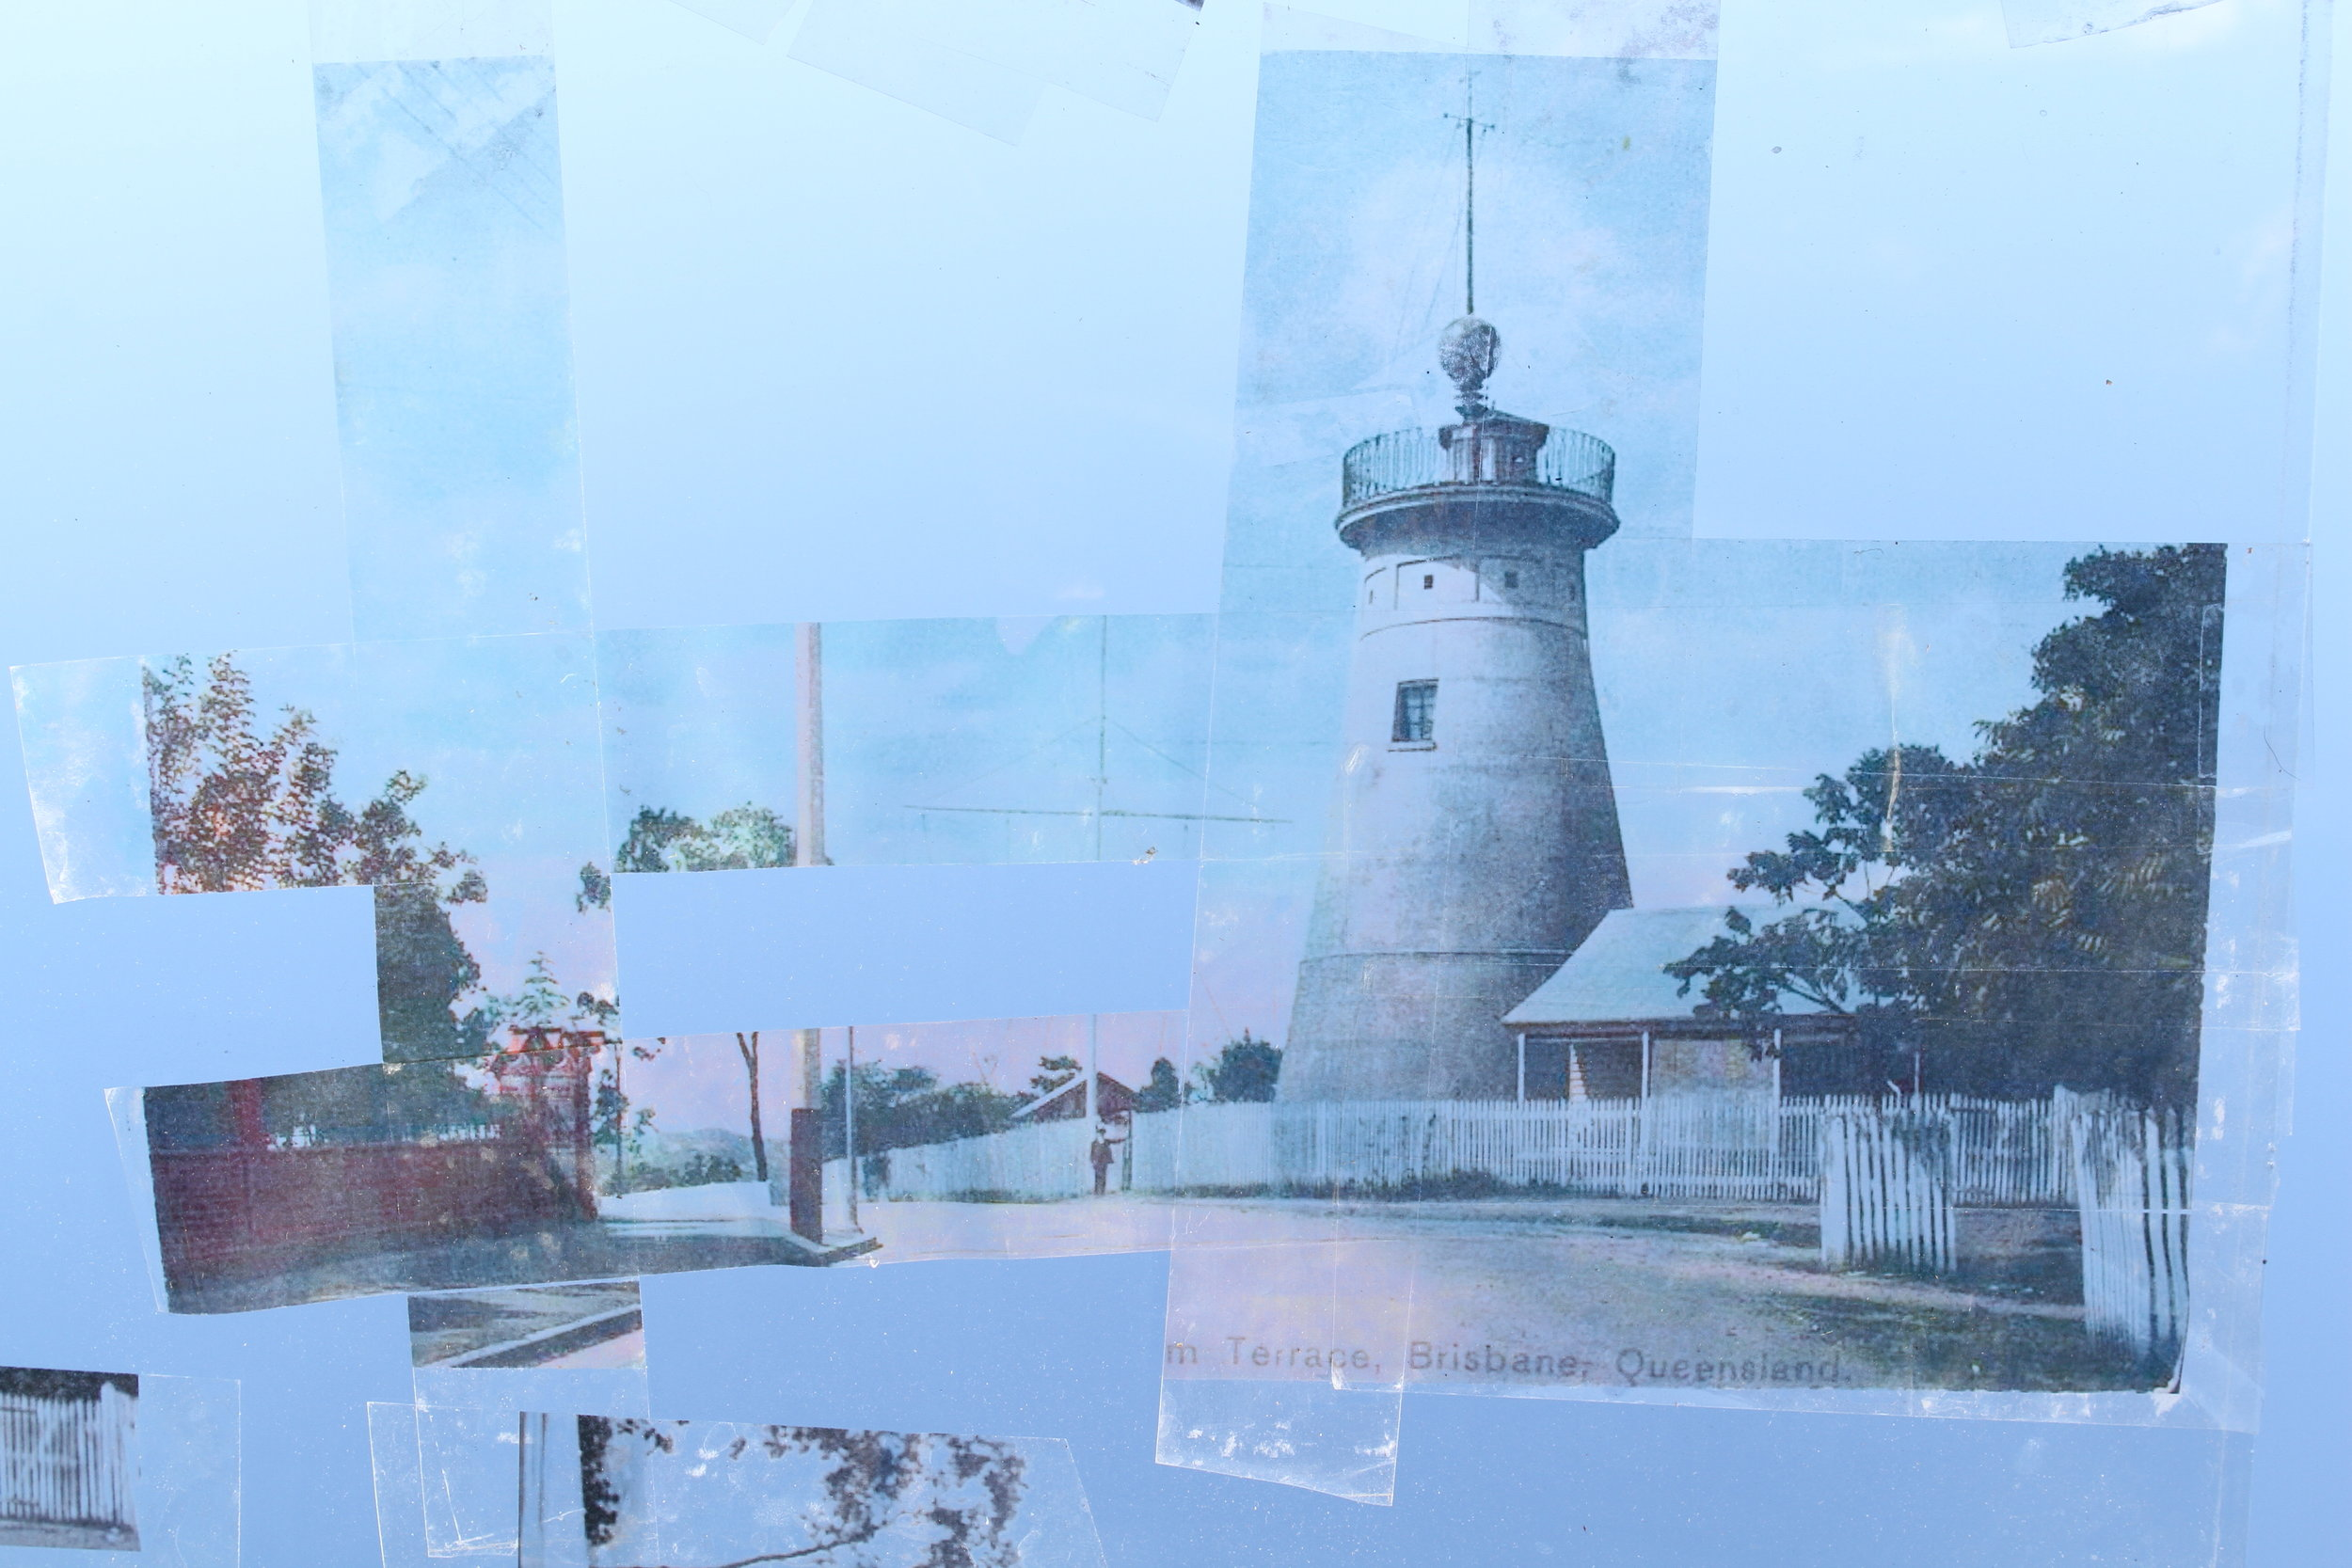 The beginnings of a collage project for the QLD State Archives. Working with archival images is a very tangible way to processes my place in the physical and cultural past. The site of the Old Windmill at Springhill has a sordid history and a bodeful air—definitely worth some contemplation.  June 2017.